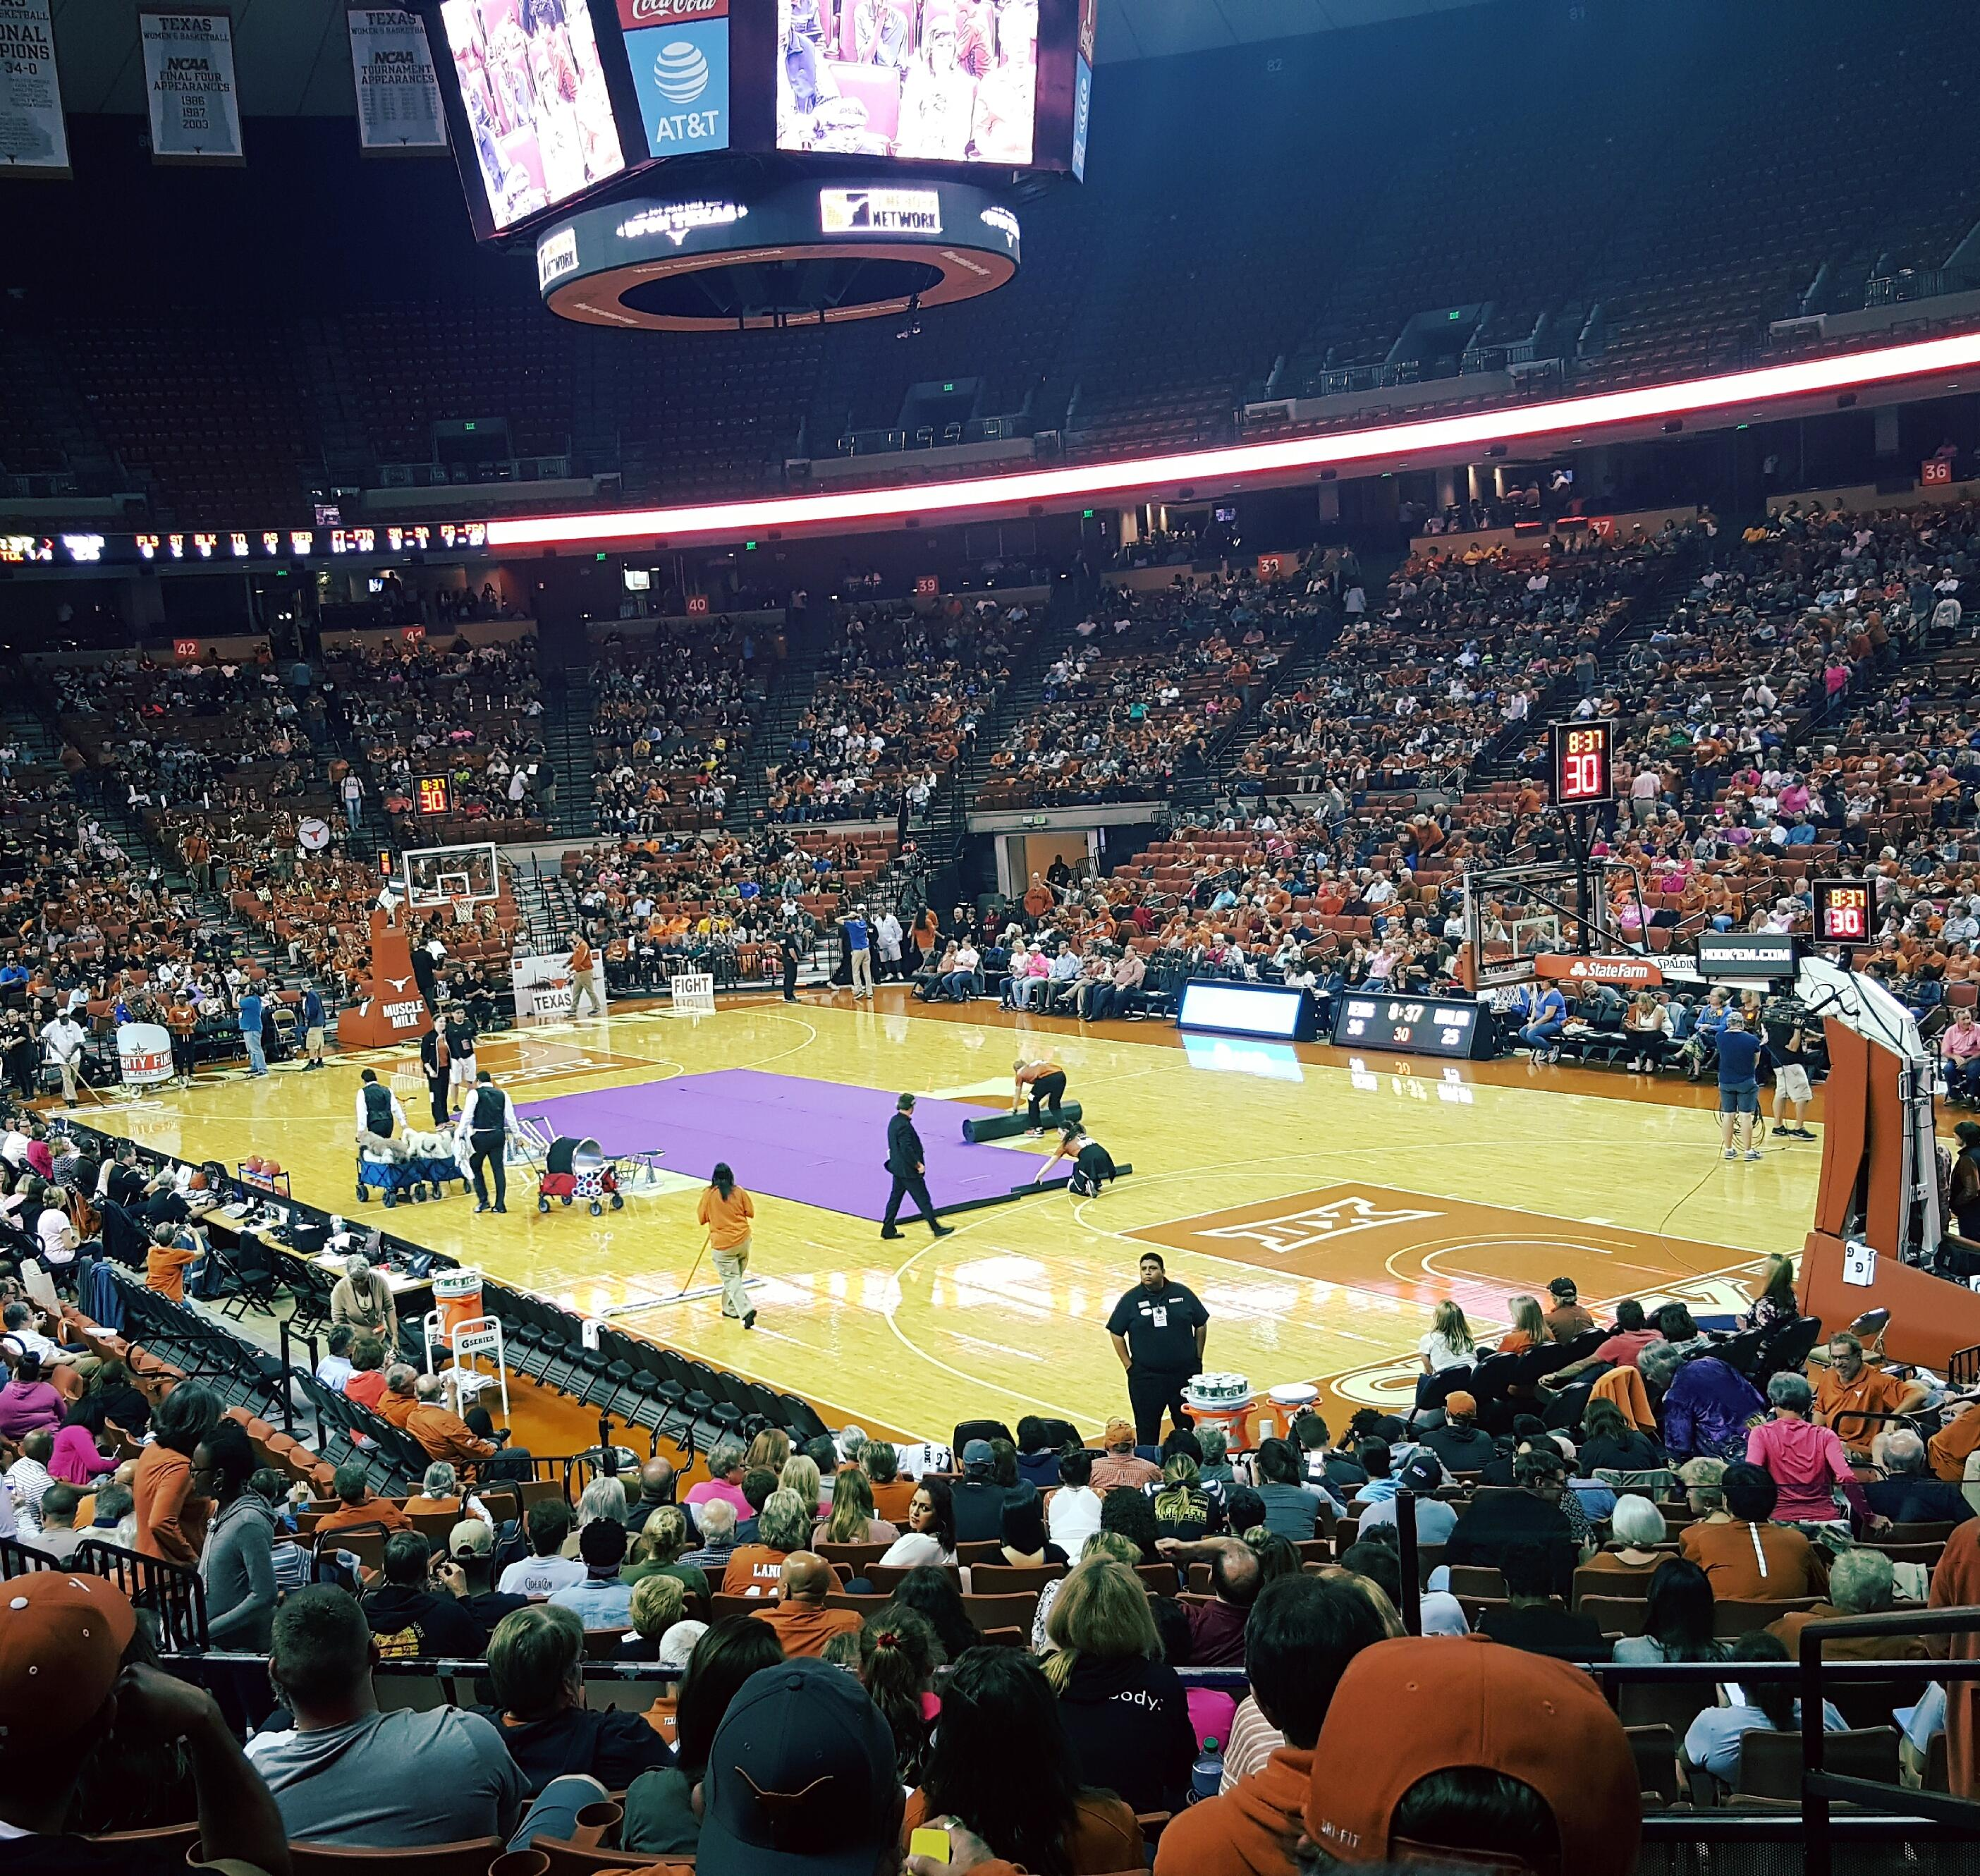 Frank Erwin Center Section 24 Row 22 Seat 10